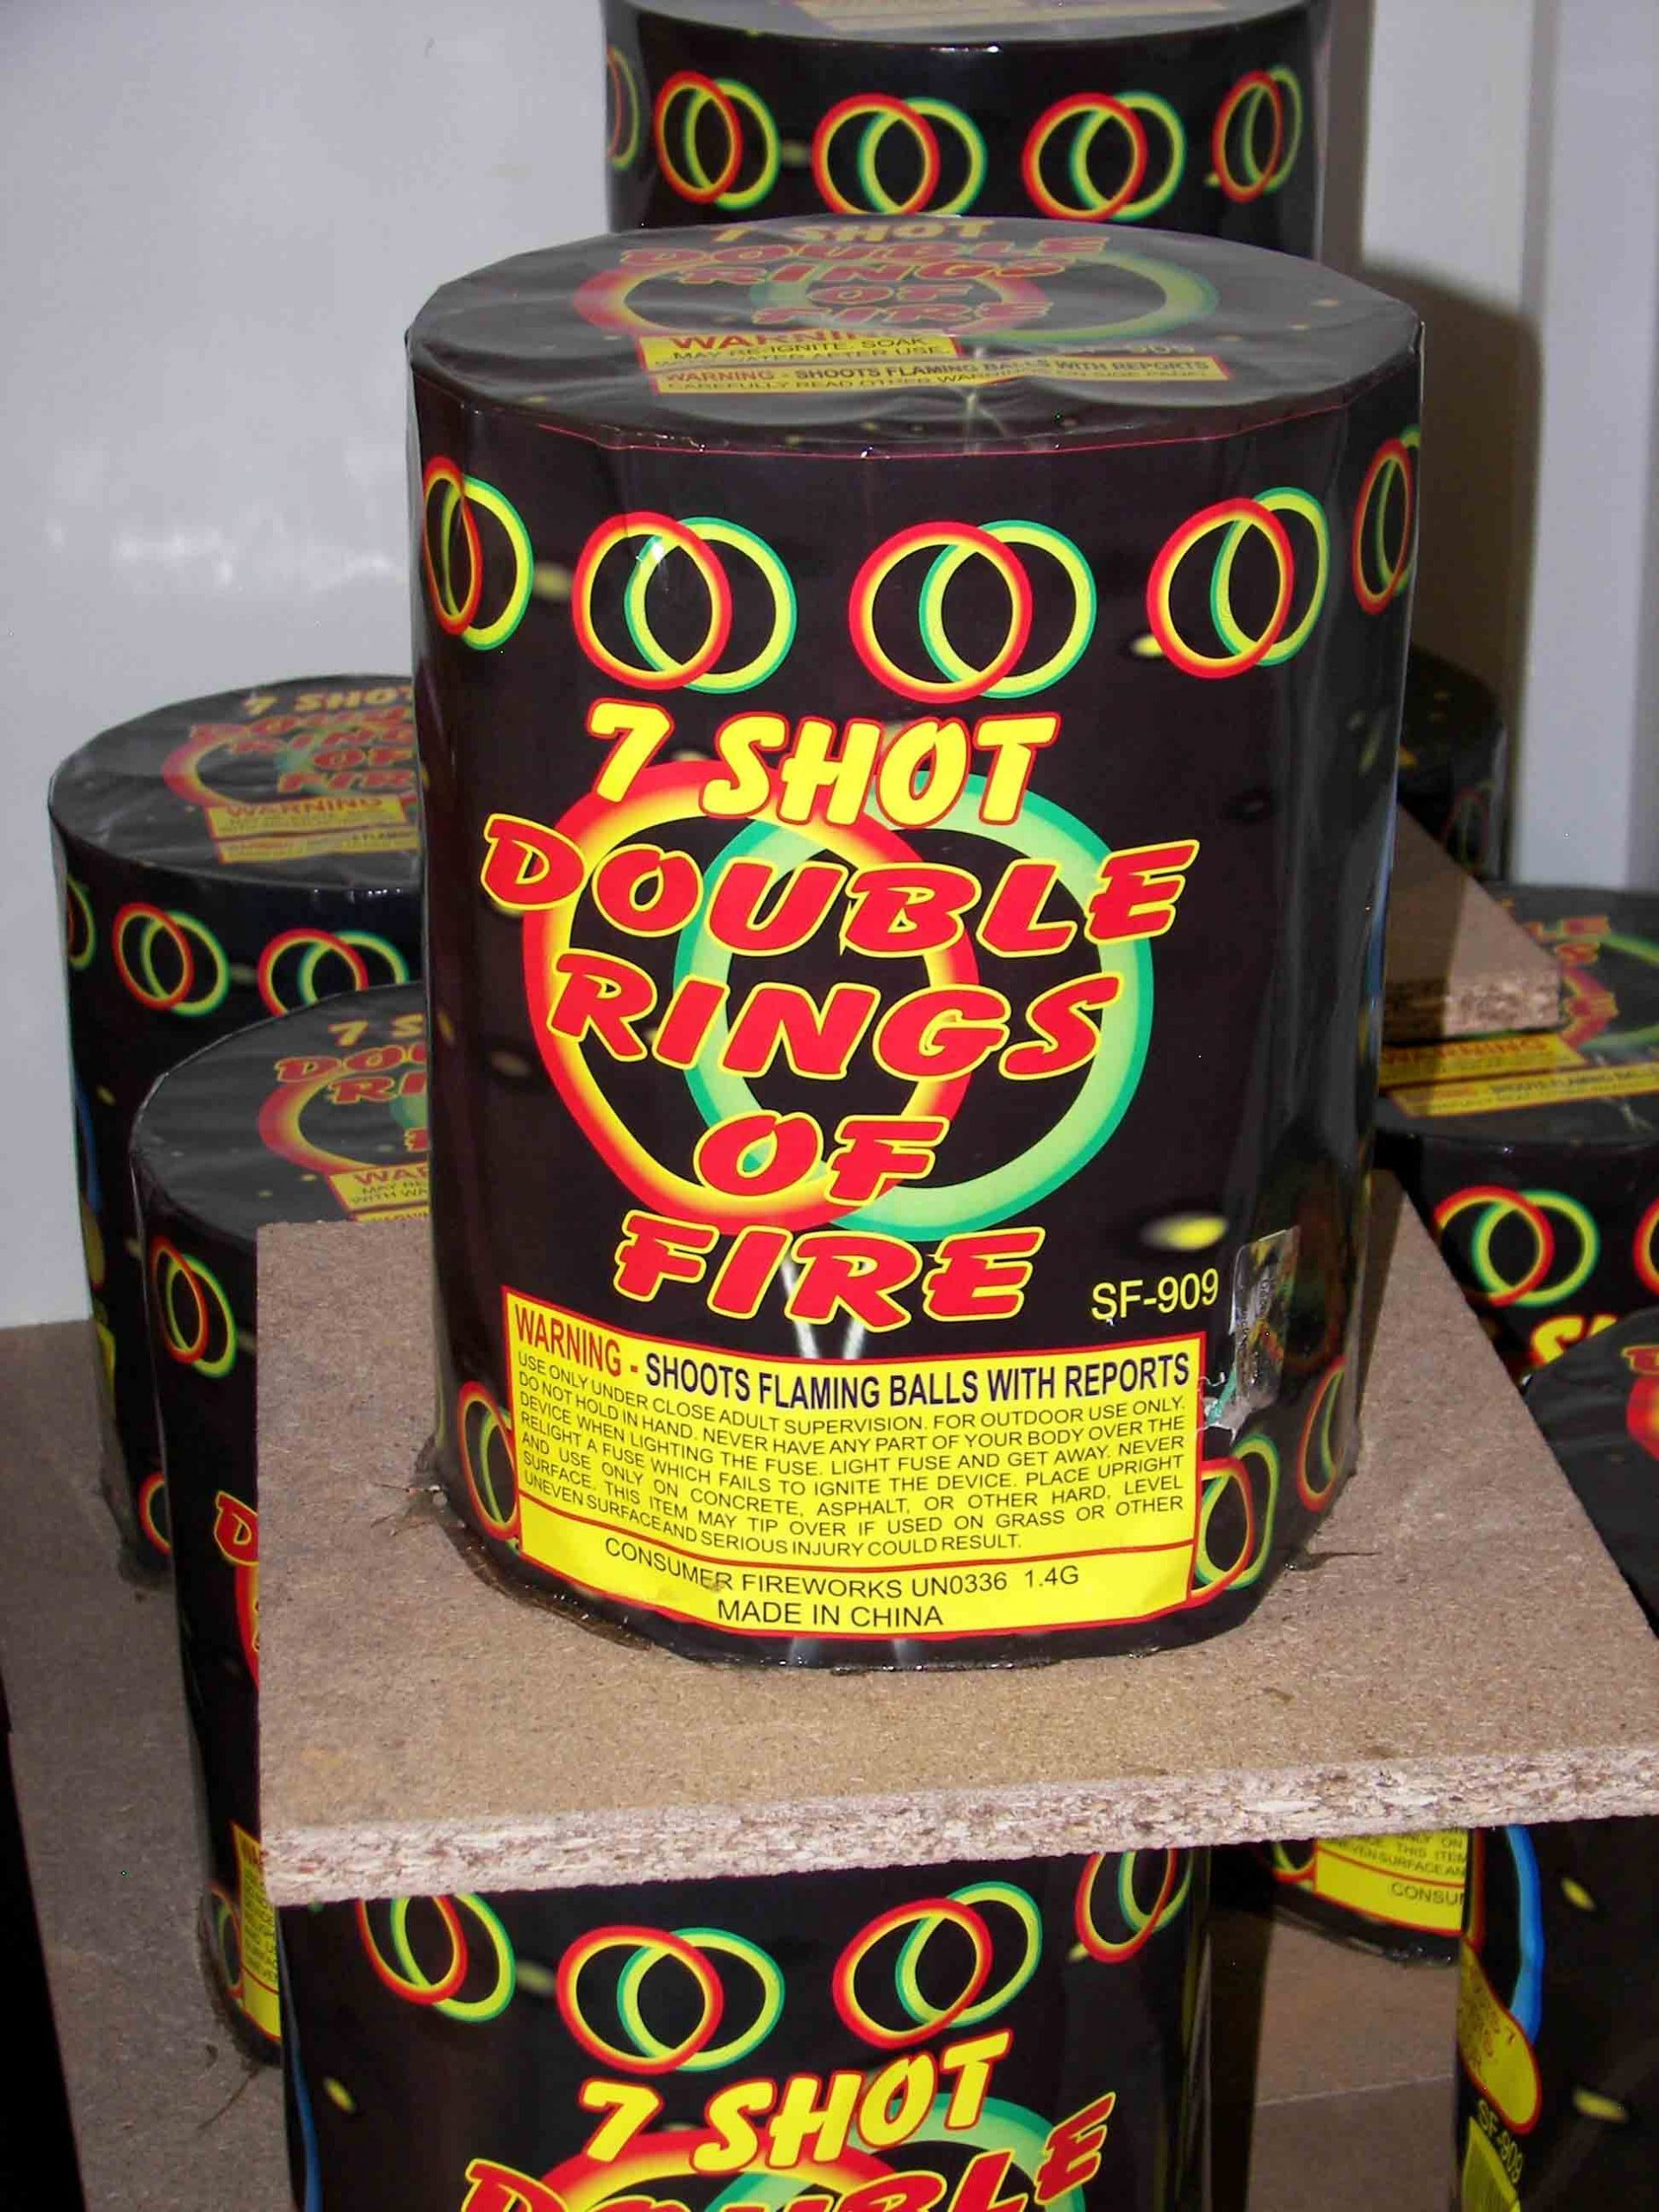 DOUBLE RINGS OF FIRE (Grand finale, 500 grams) Image